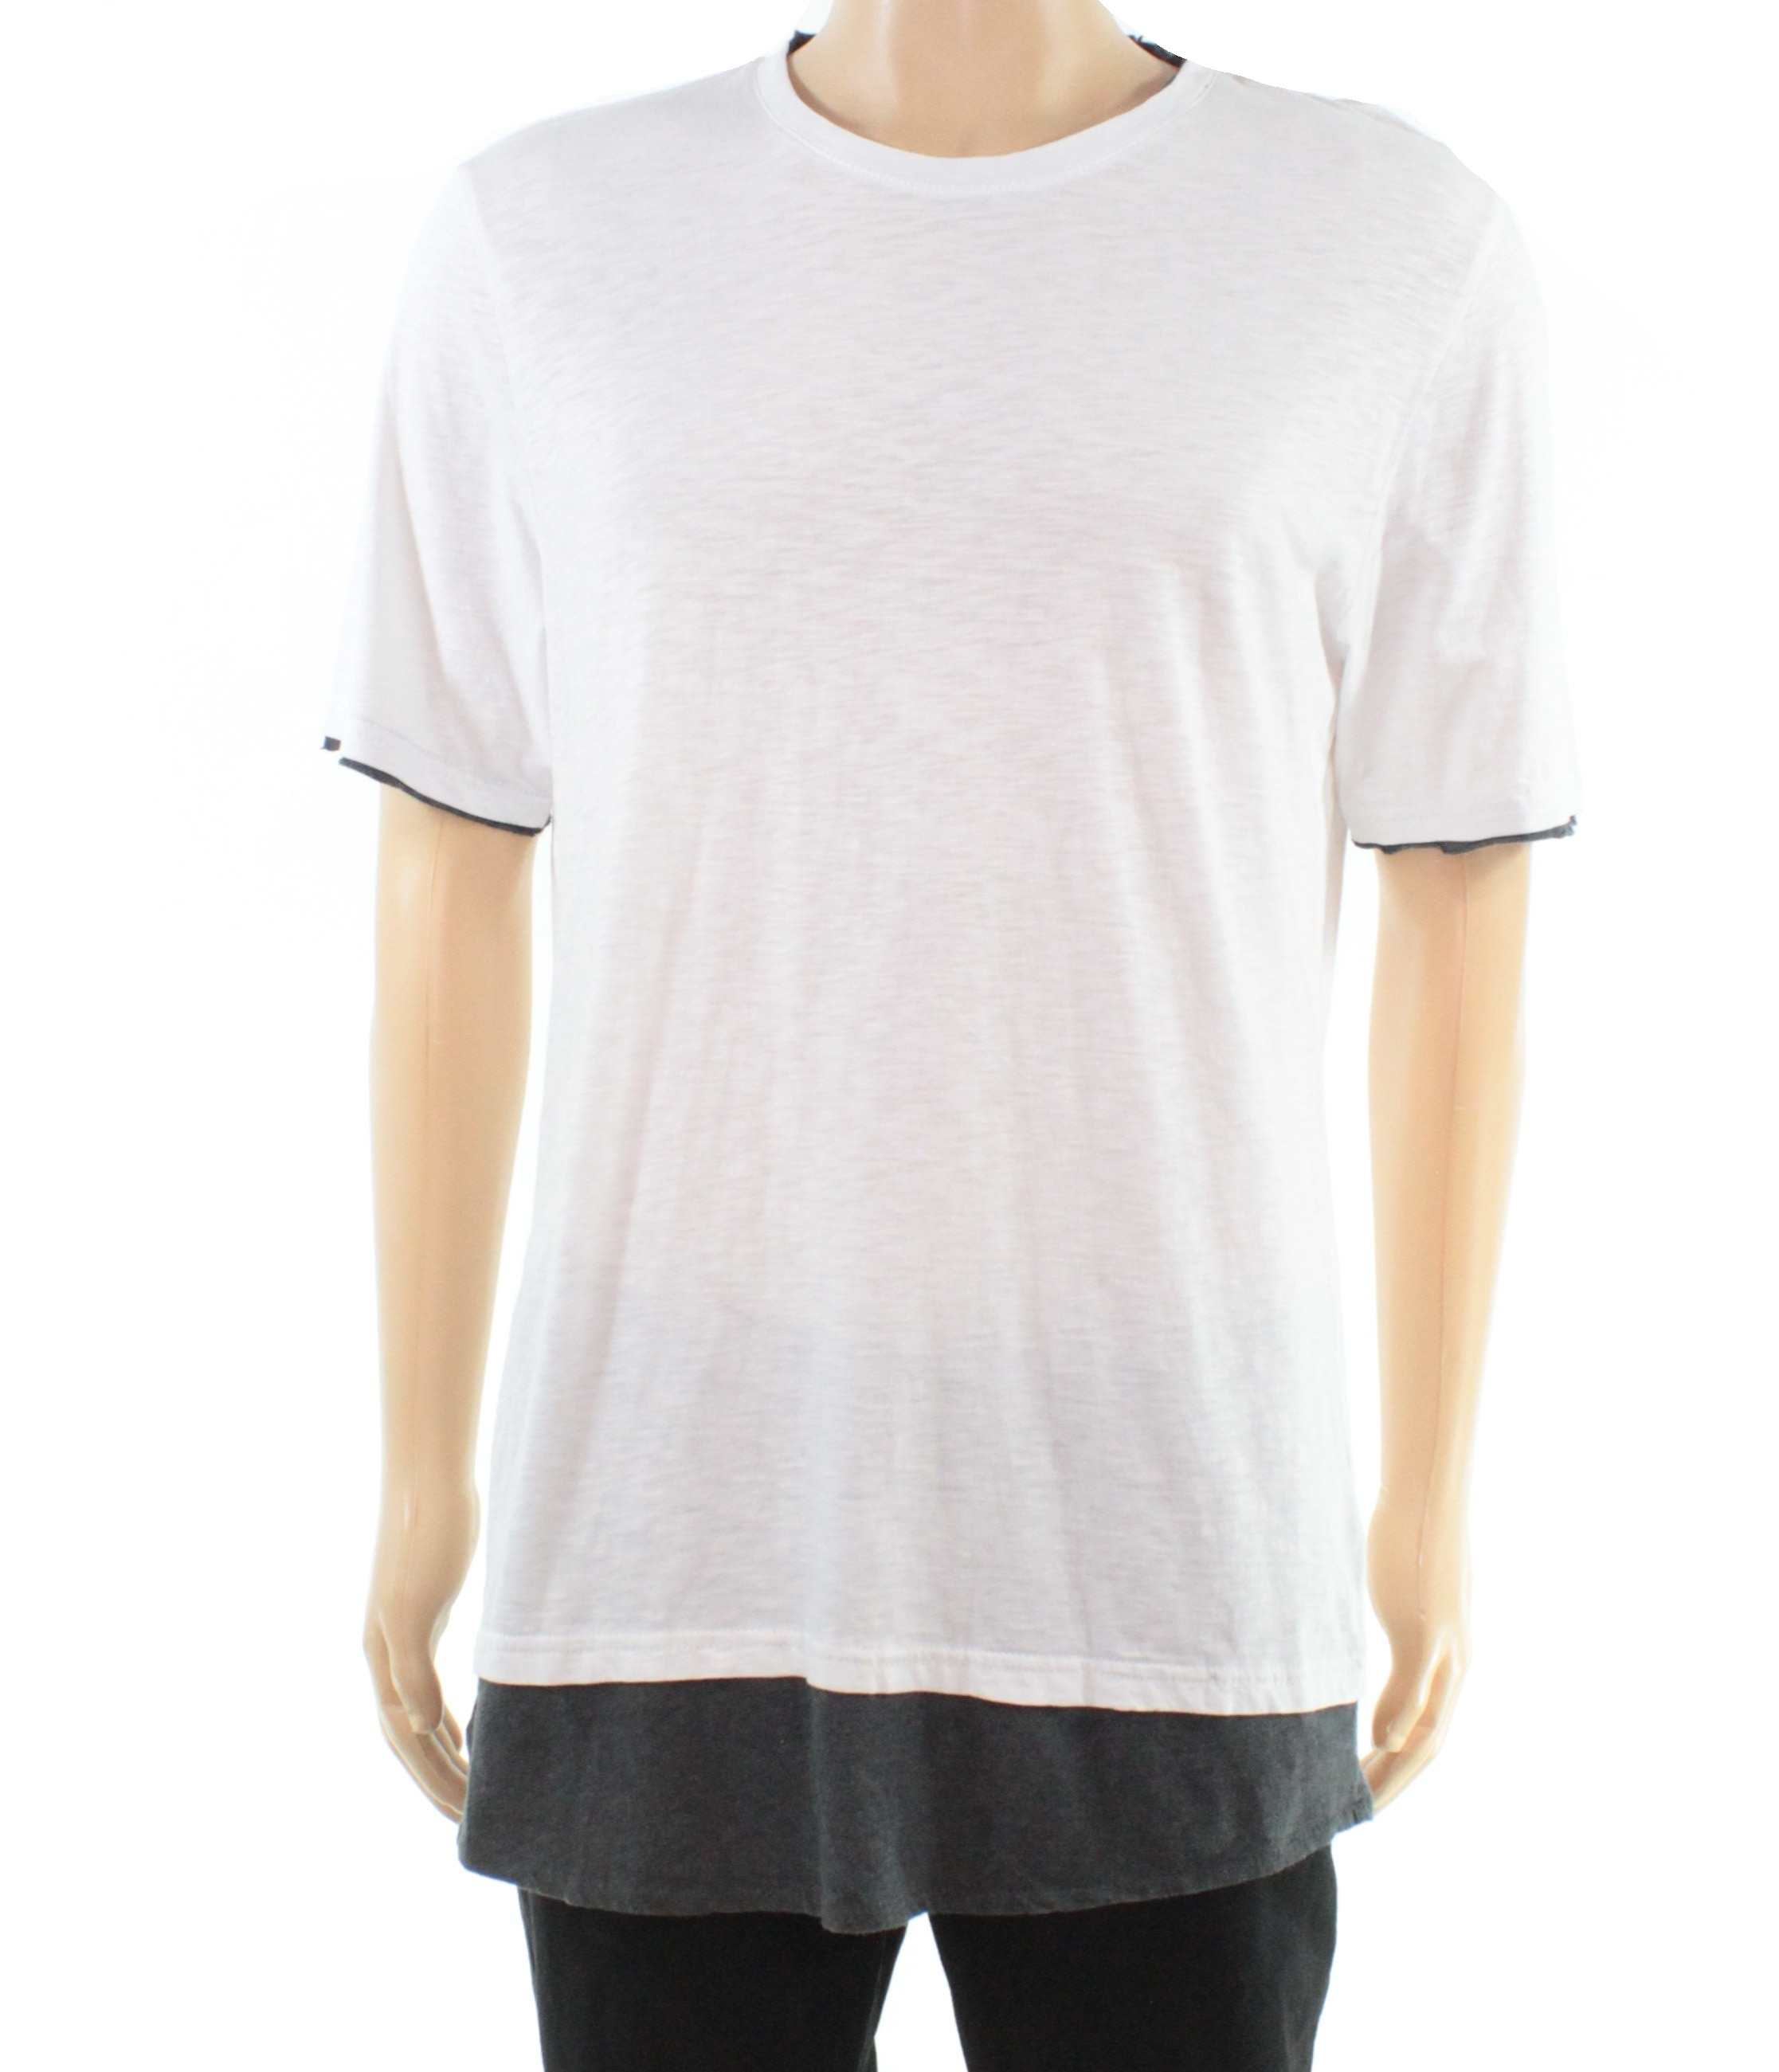 INC-Mens-White-Size-2XL-Colorblock-Layered-Two-Crewneck-Tee-T-Shirt